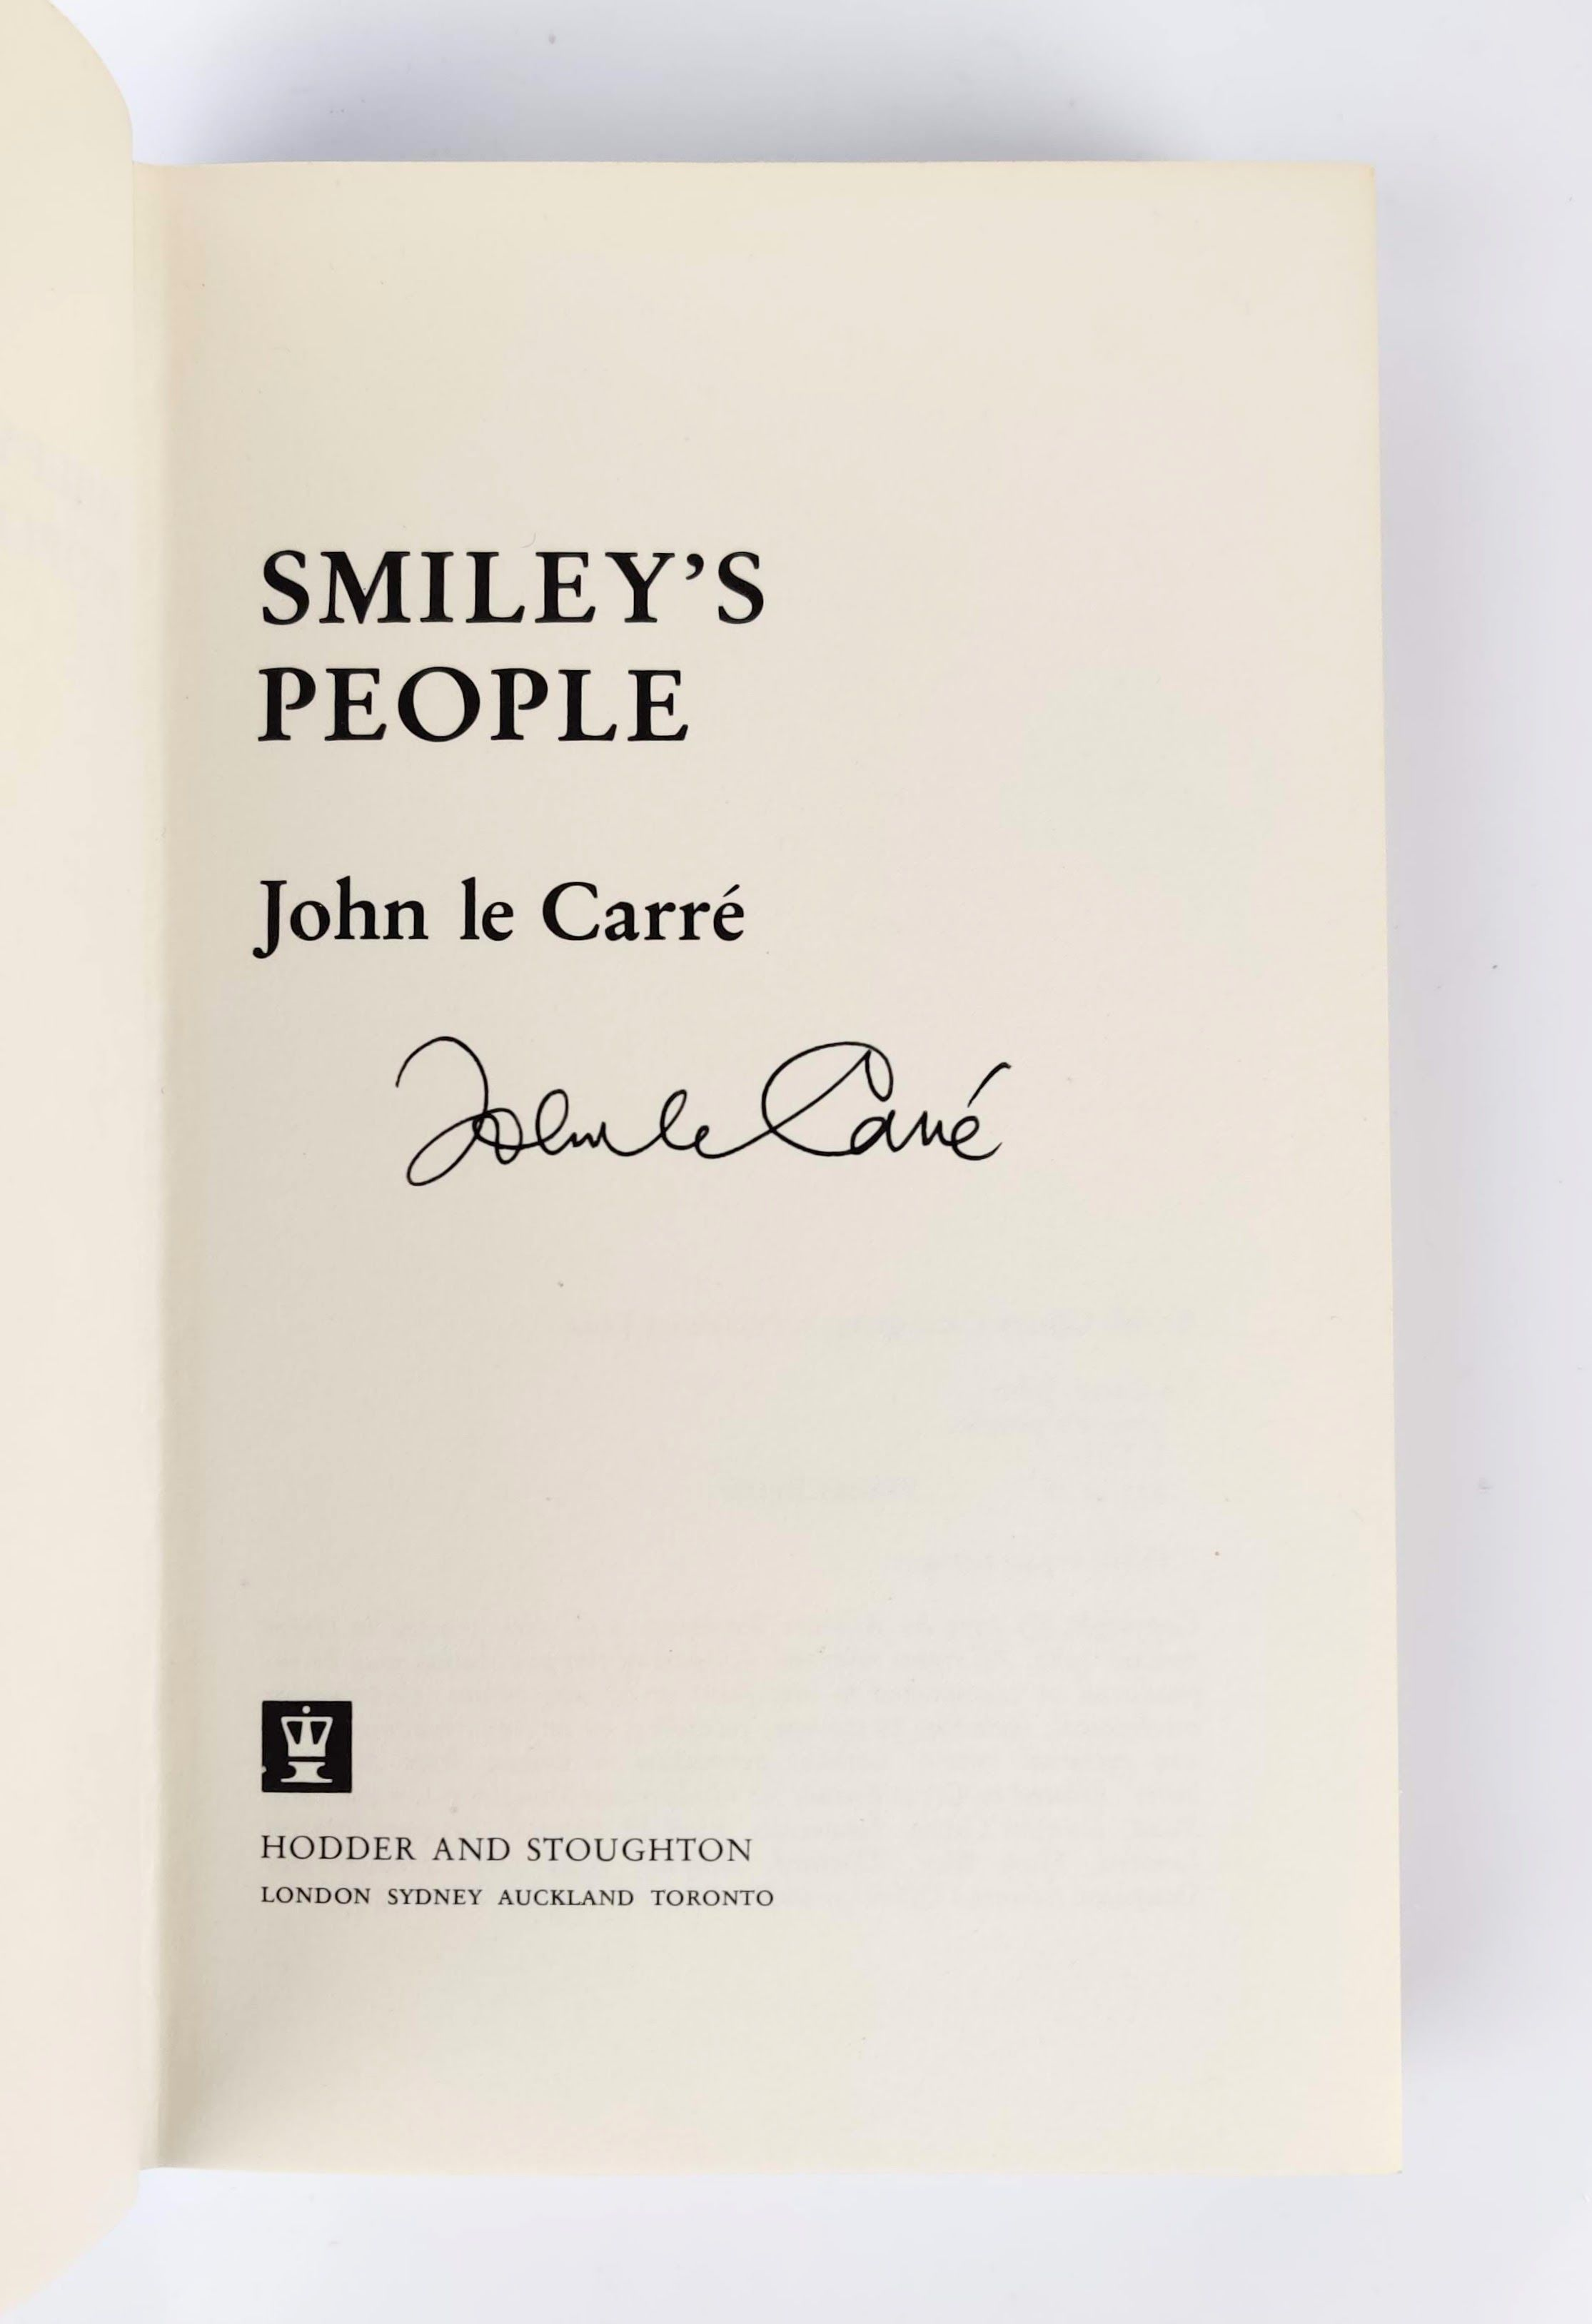 The Karla Trilogy: Tinker Tailor Soldier Spy, The Honourable Schoolboy, Smiley's People - All Signed by the Author (photo 9)